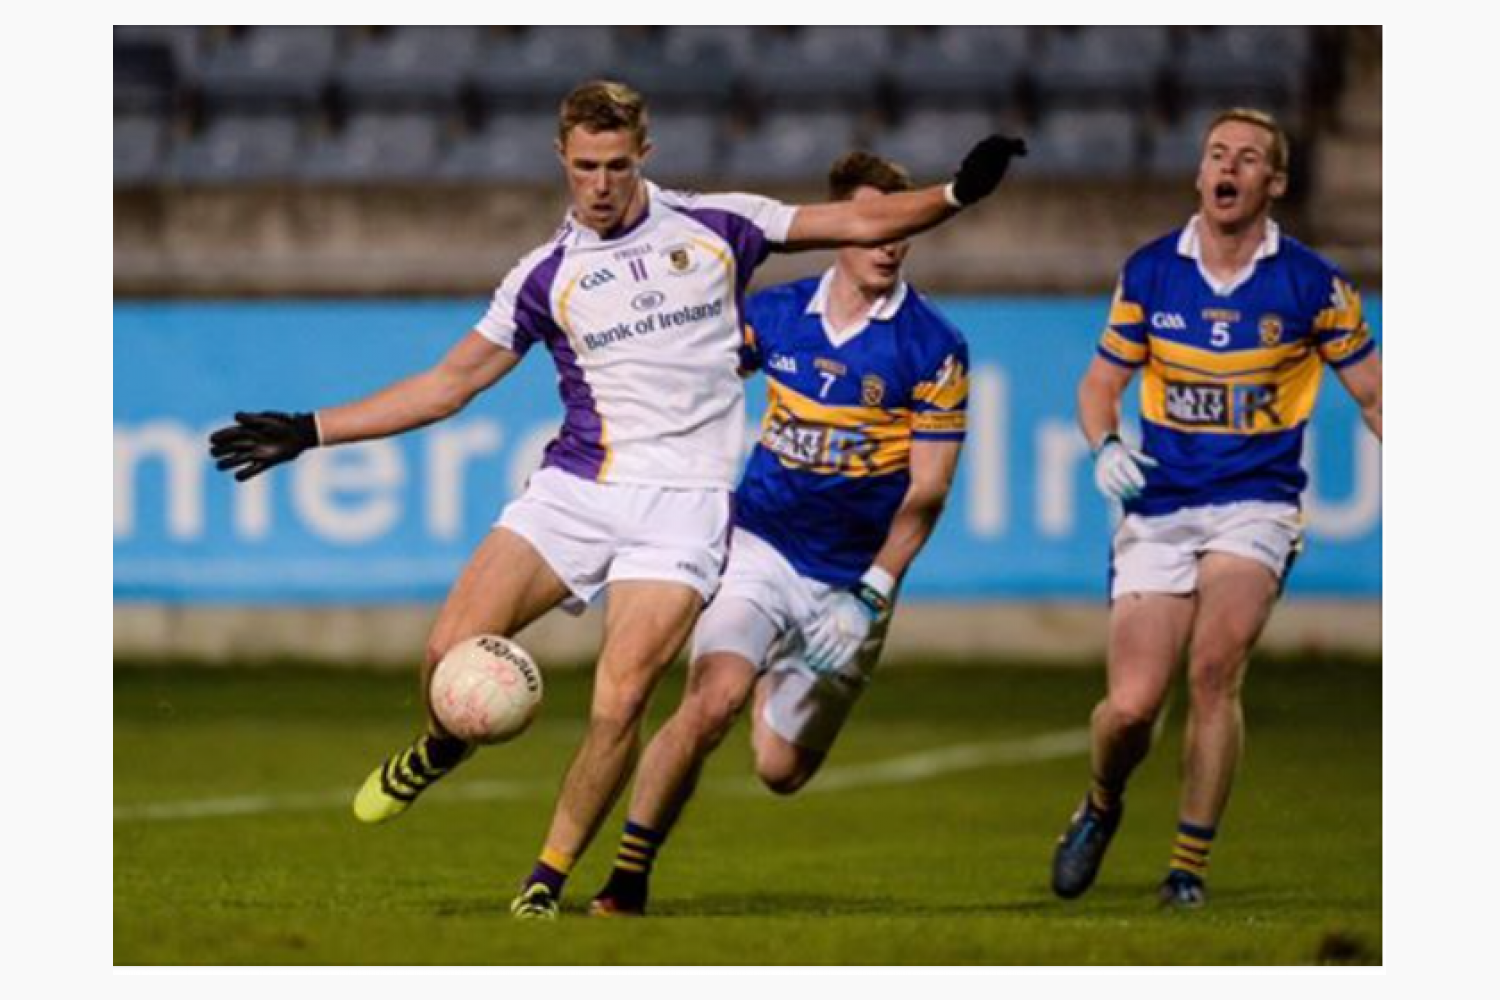 Kilmacud Crokes Senior Footballers make it into County Championship Semi Final